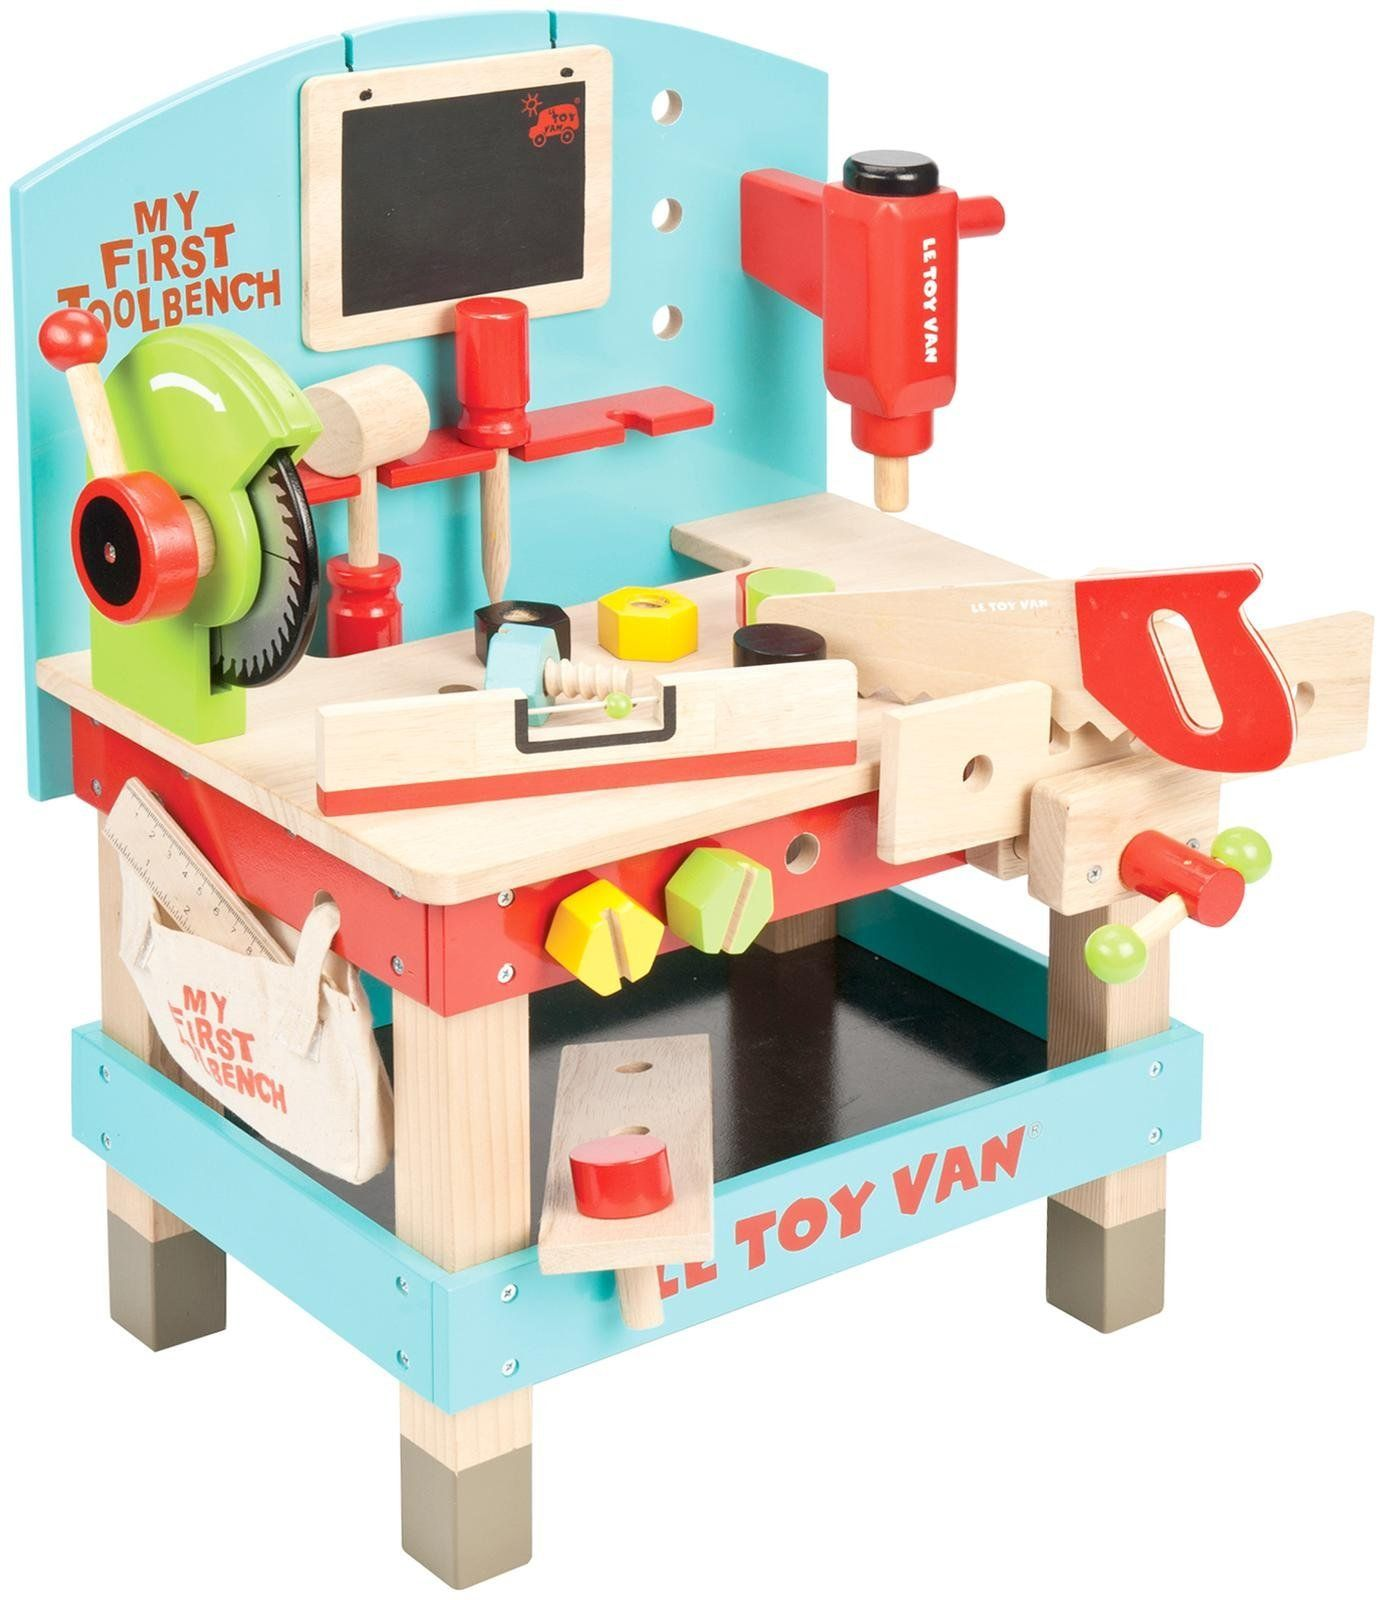 le toy van my first tool bench le toy van my first tool bench - Best Toys Christmas 2014